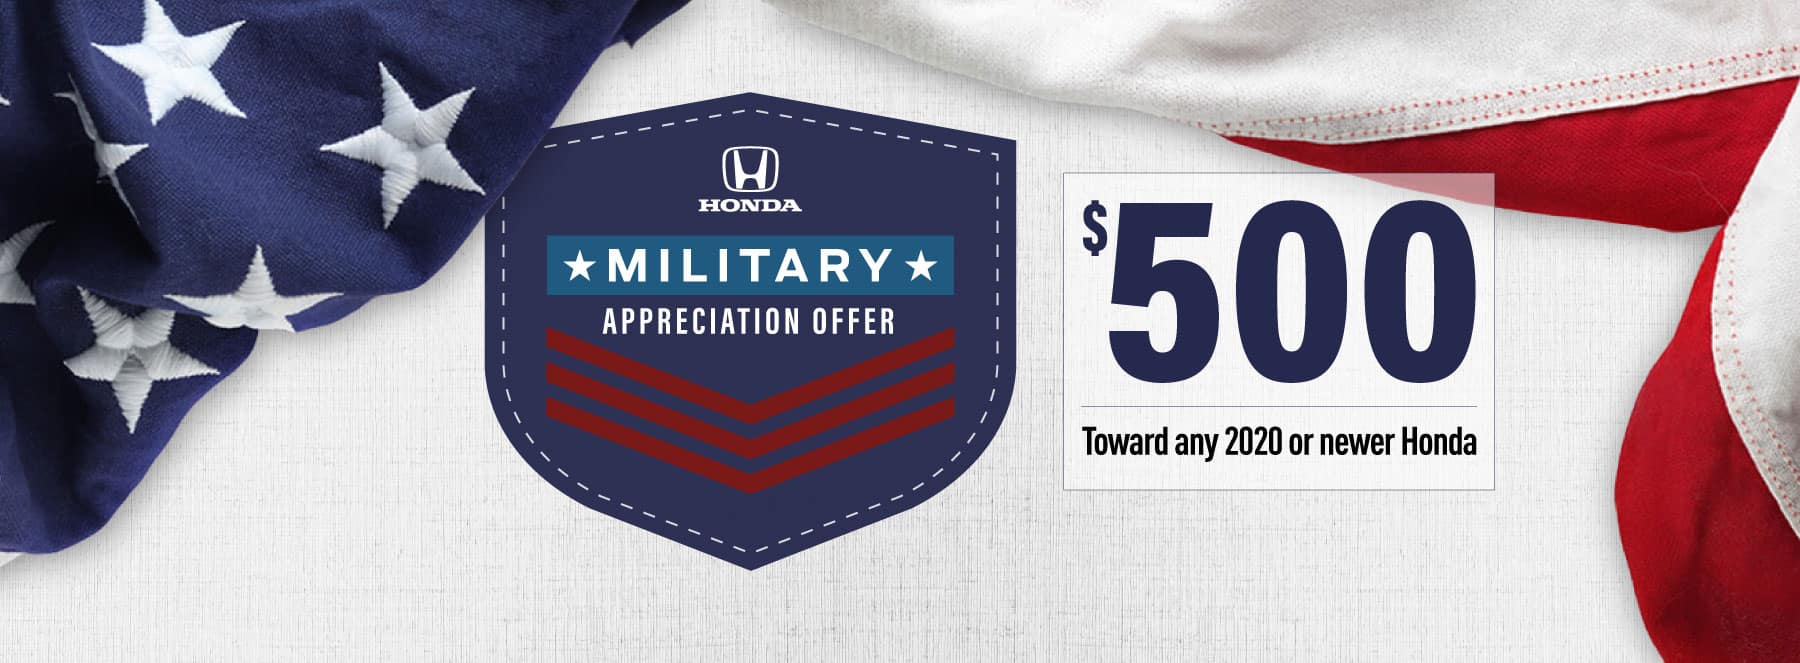 Honda Military Offer - $500 toward any 2020 or newer Honda